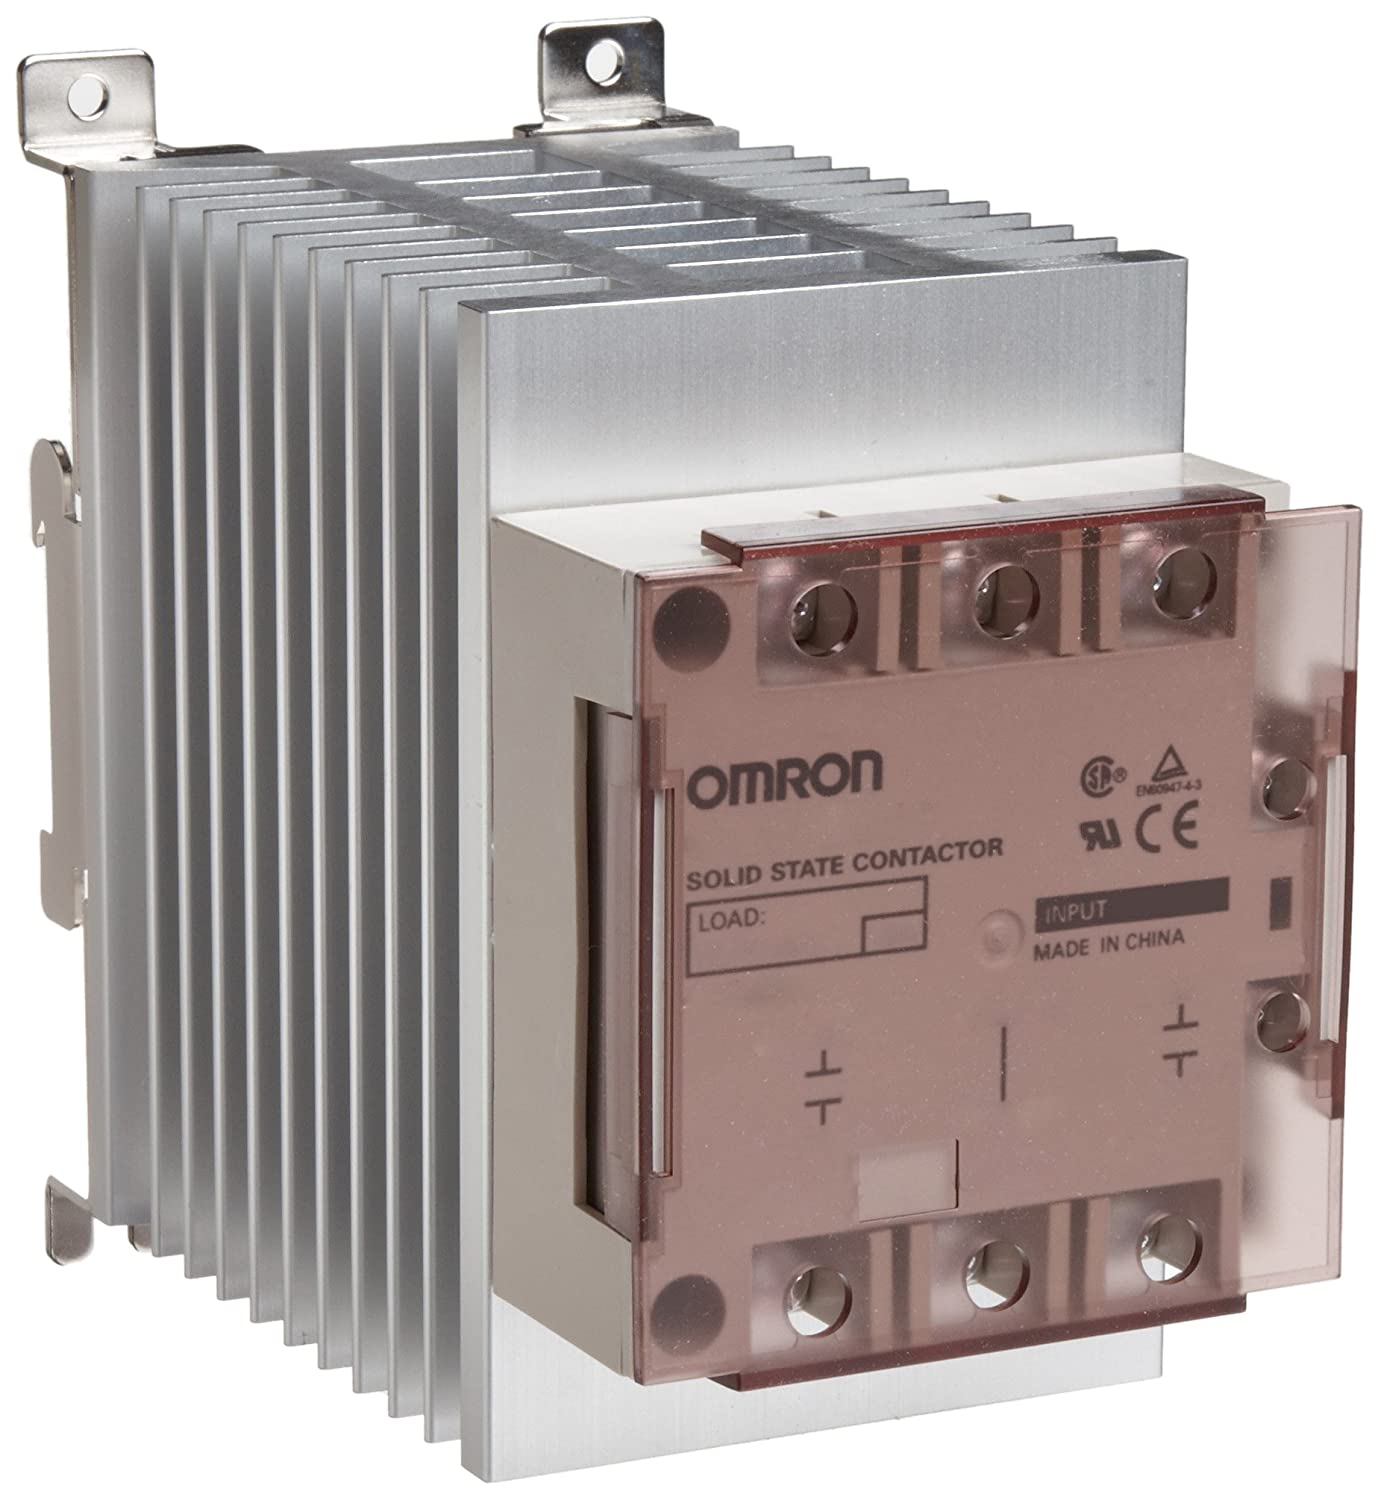 Omron G3pe 515b 3n Dc12 24 Solid State Relay For Heaters Zero Cross Ormron Wiring Diagram Function Yellow Indicator Phototriac Coupler Isolation Triple Phase